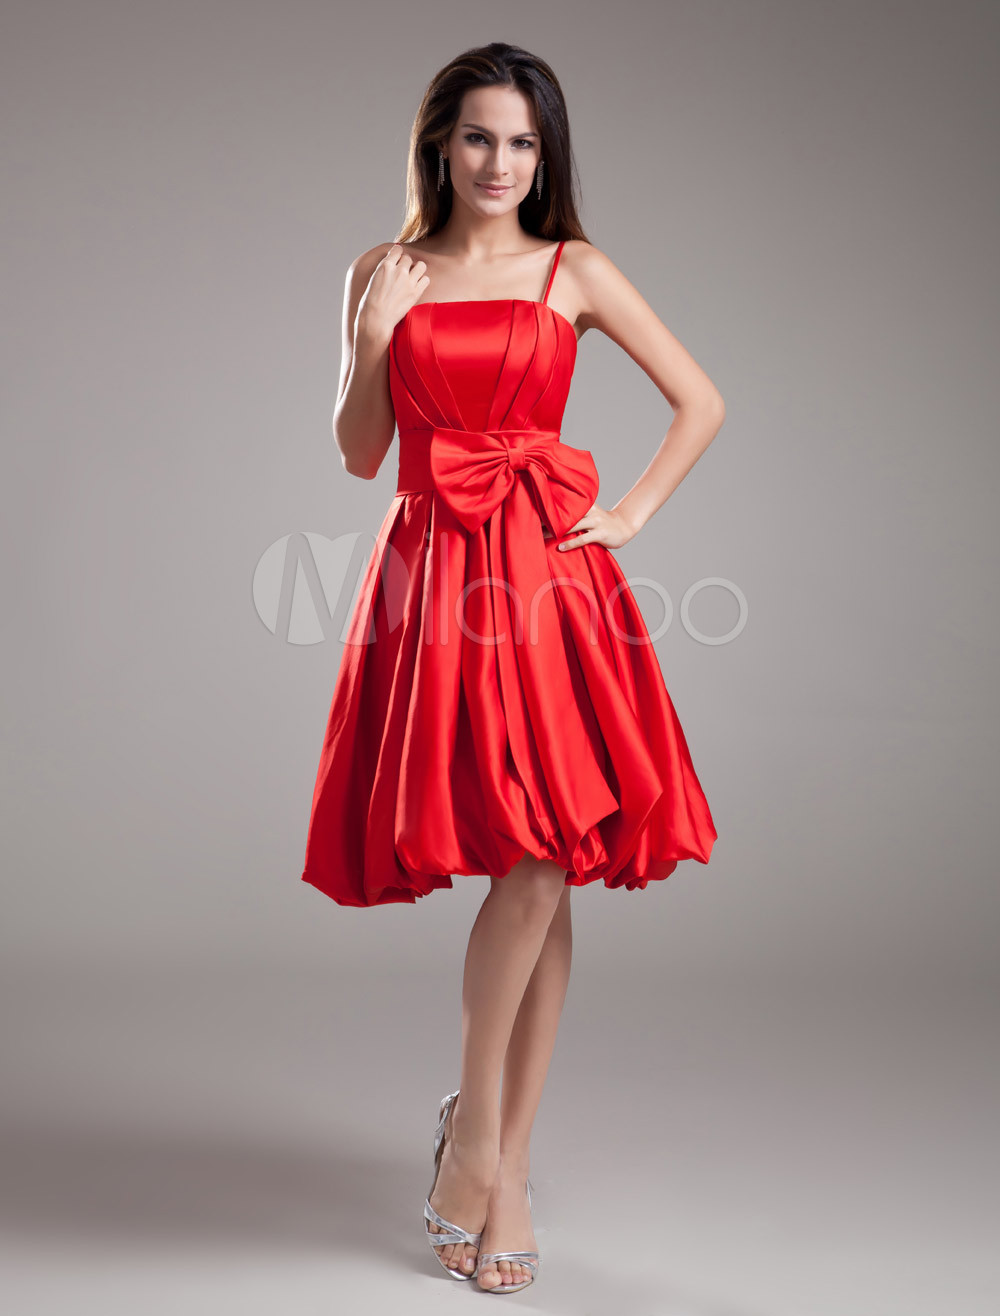 Beautiful A-line Red Satin Bow Straps Neck Knee-Length Fashion Bridesmaid Dress